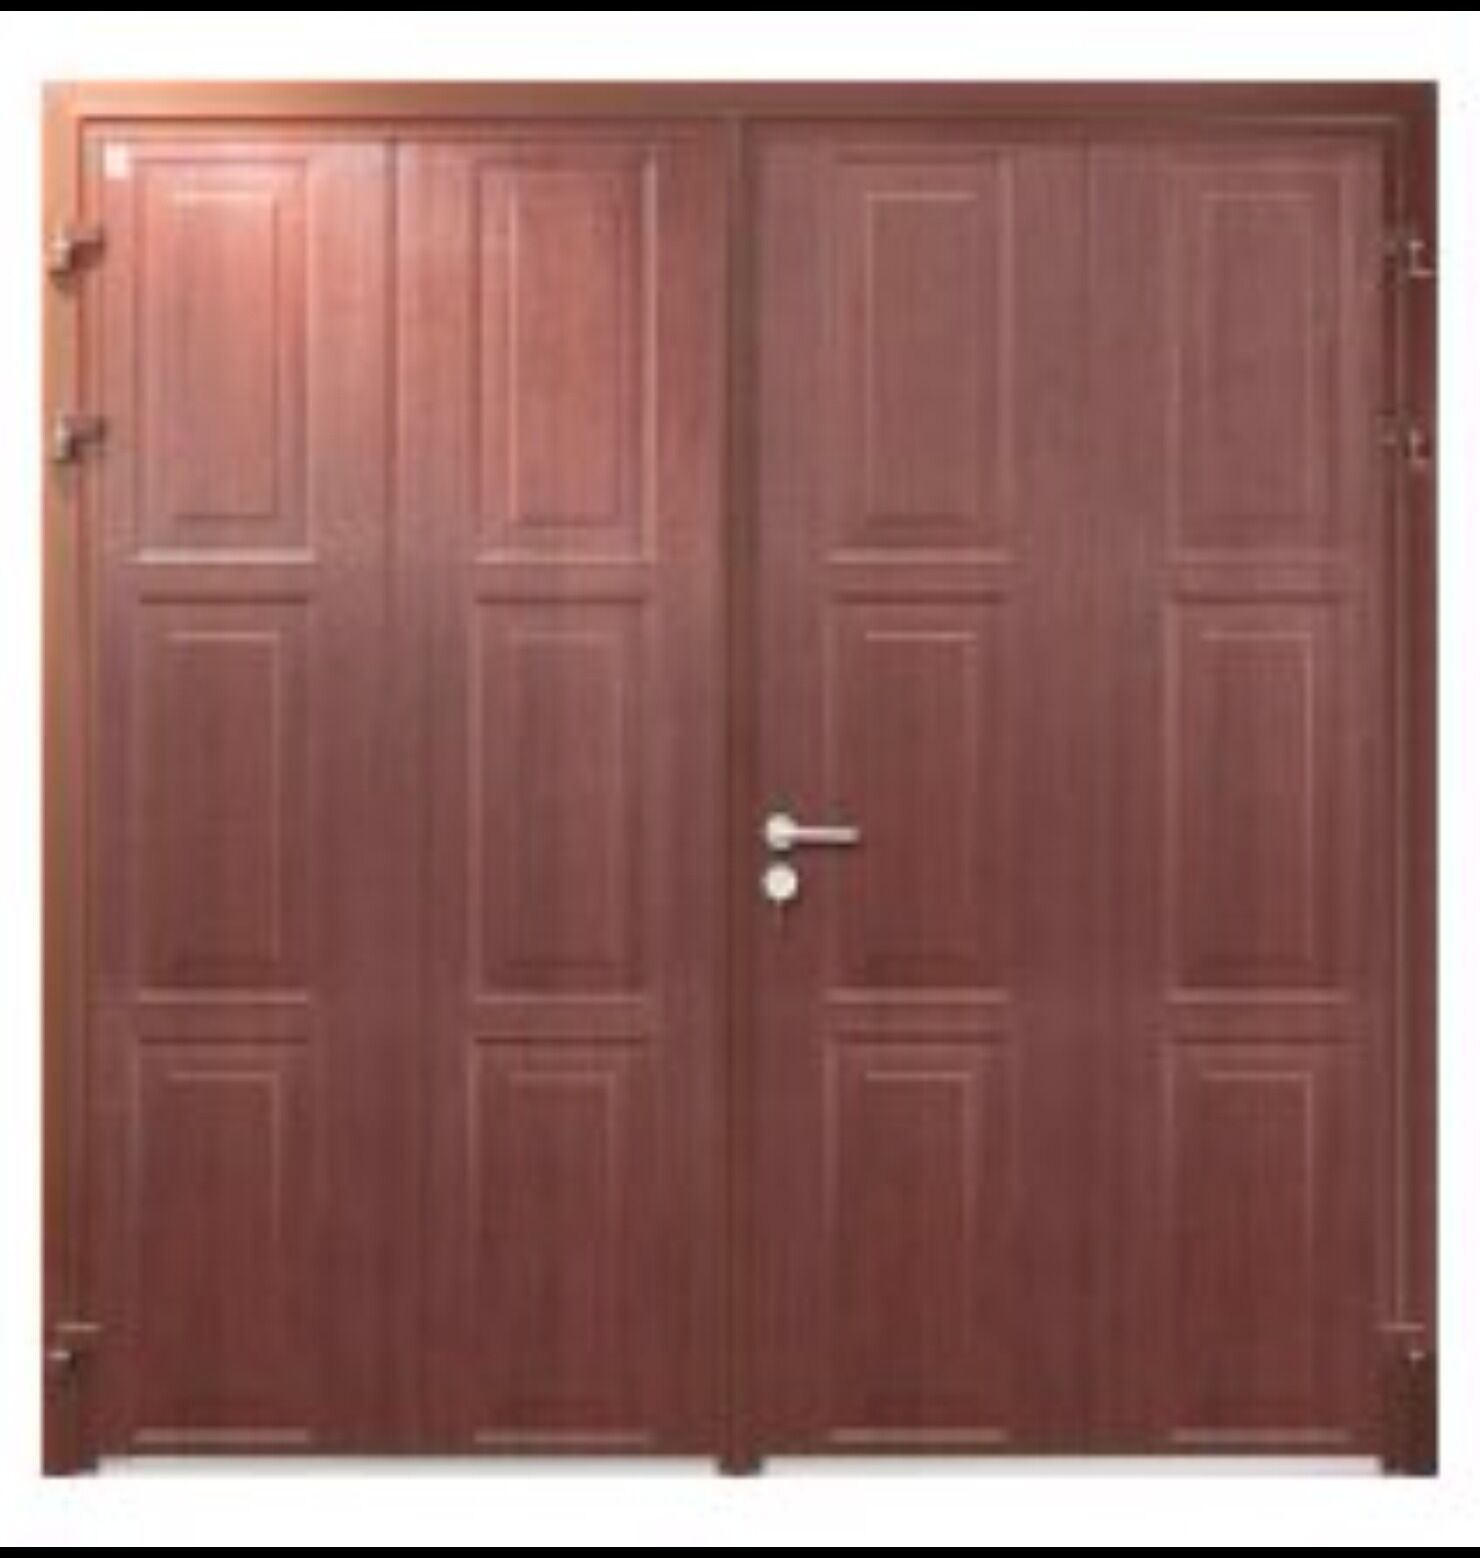 1558 #9C4A2F Insulated Side Hinged Garage Door Steel Side Hung Opening Georgian  picture/photo Steel Insulated Exterior Doors 40691480